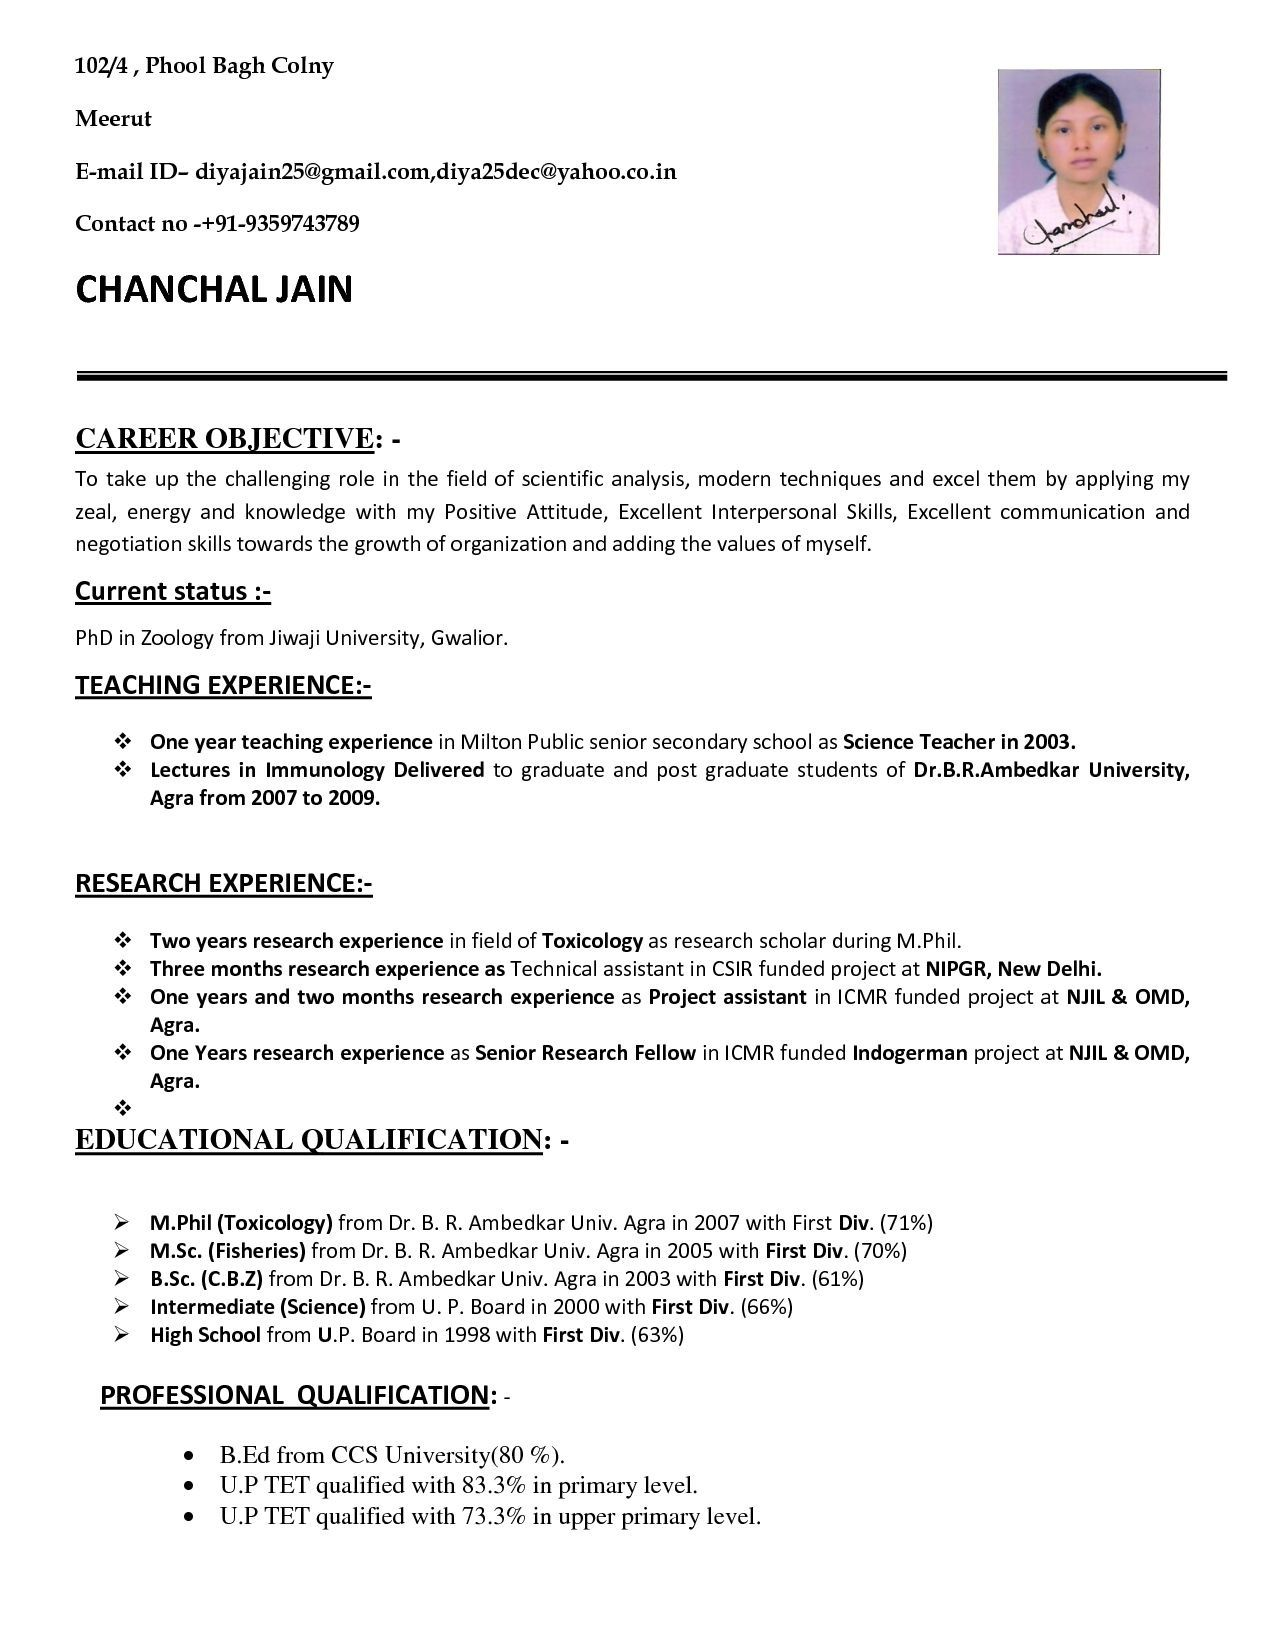 002 Magnificent Resume Example For Teaching Job  Jobs Format Sample Curriculum Vitae Profession In IndiaFull